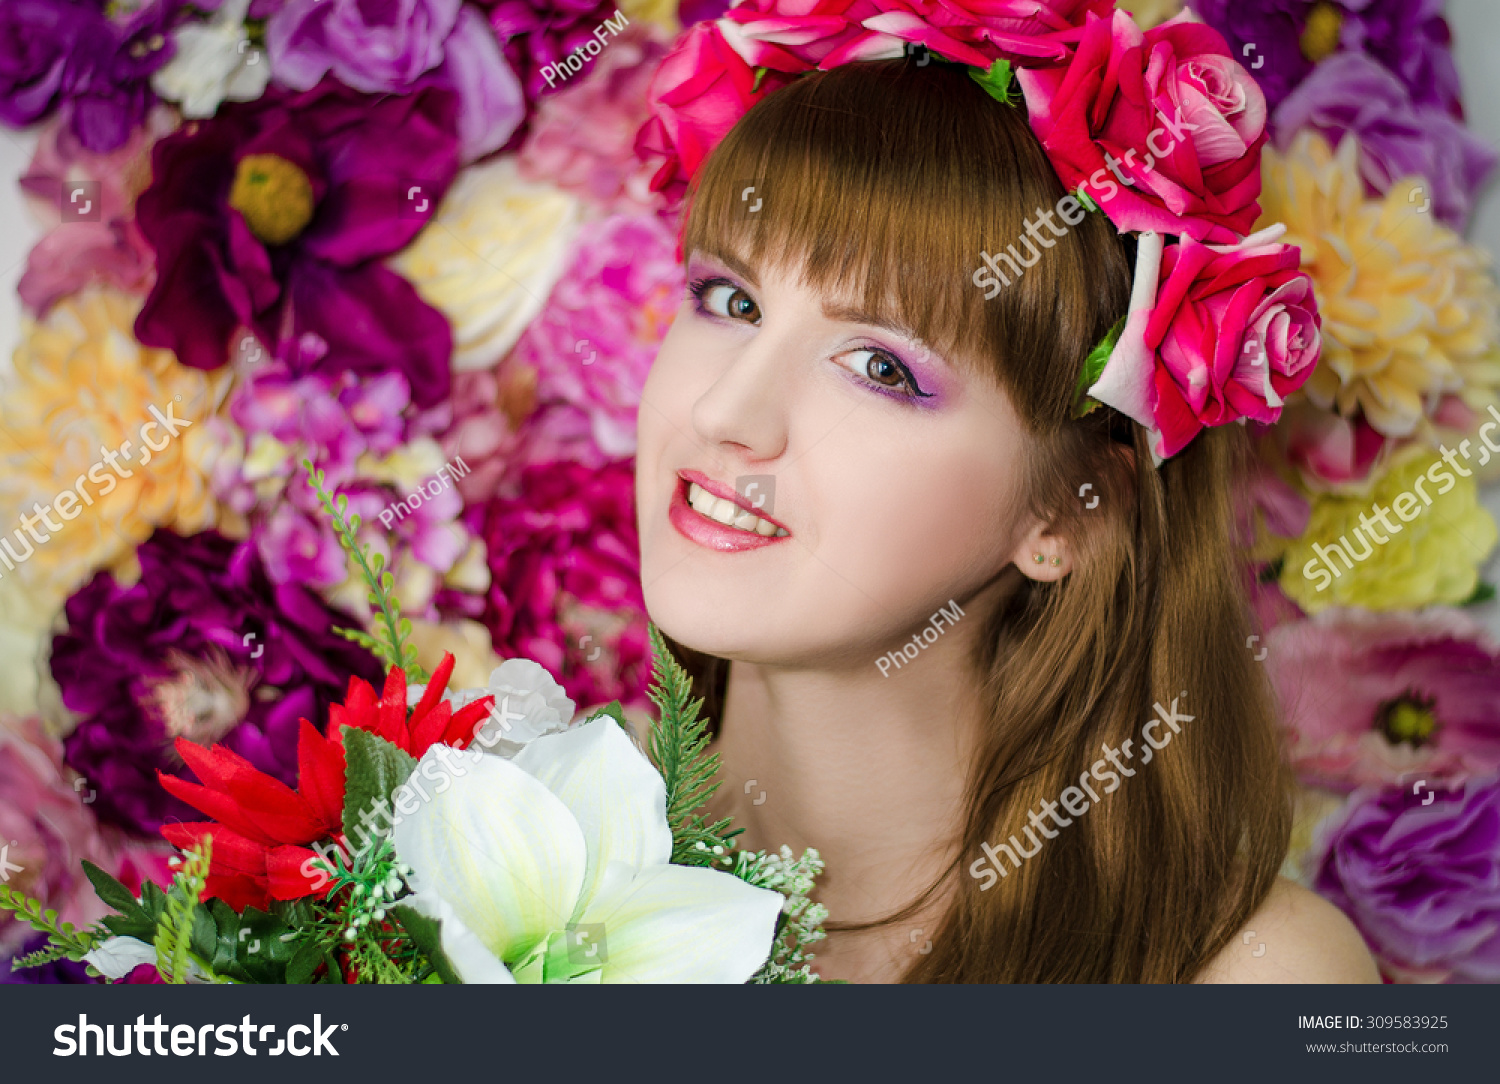 Beautiful girl with flowers beauty with a beautiful professional id 309583925 izmirmasajfo